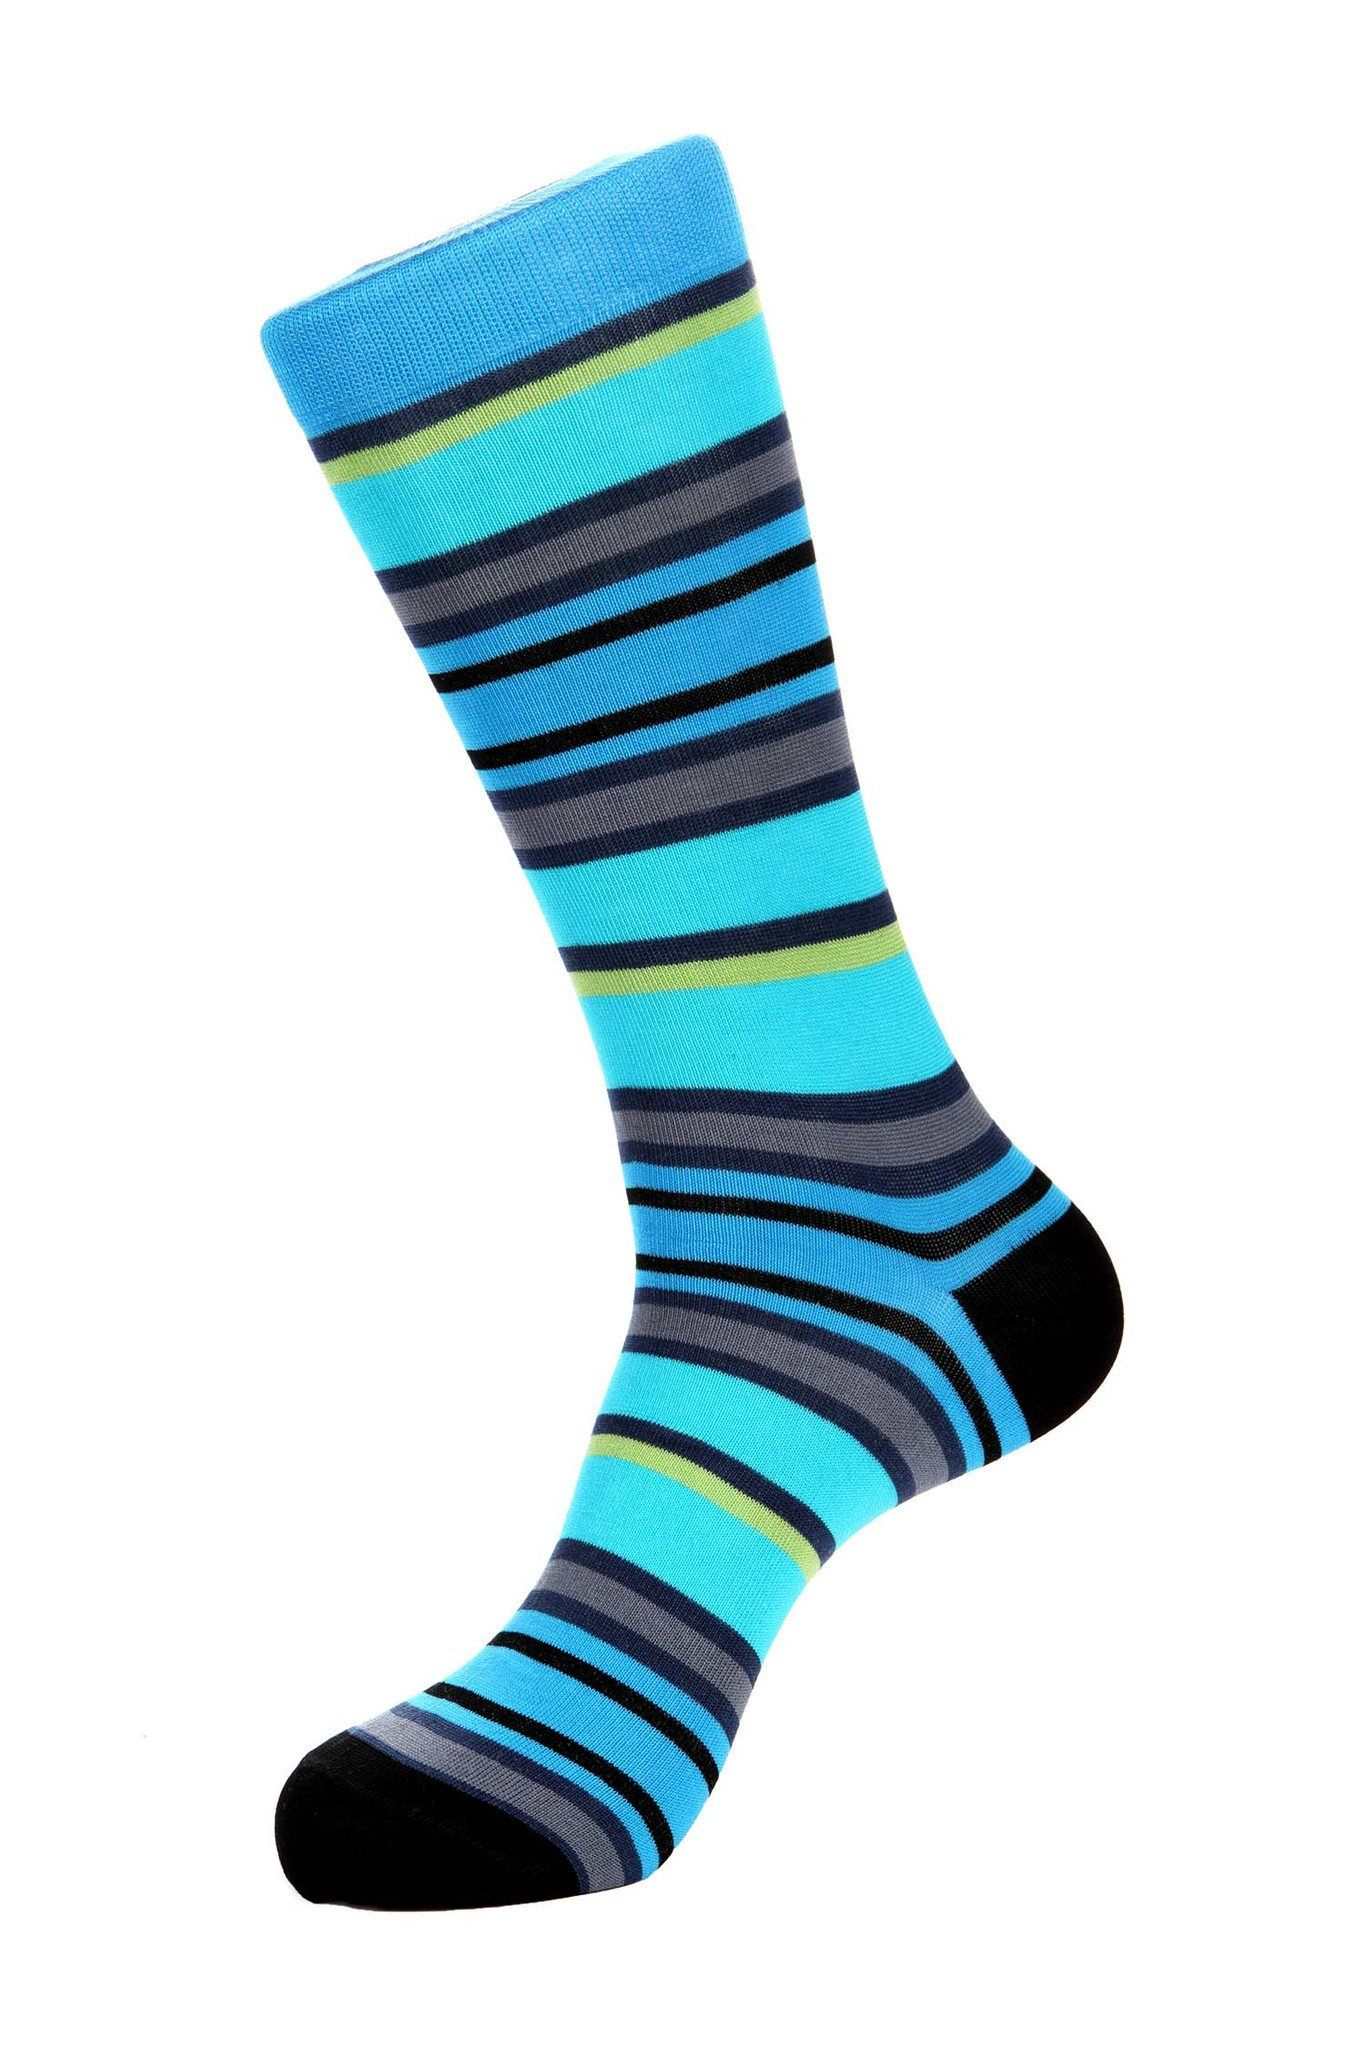 JL-11055-3,socks,Jared Lang, | GentRow.com